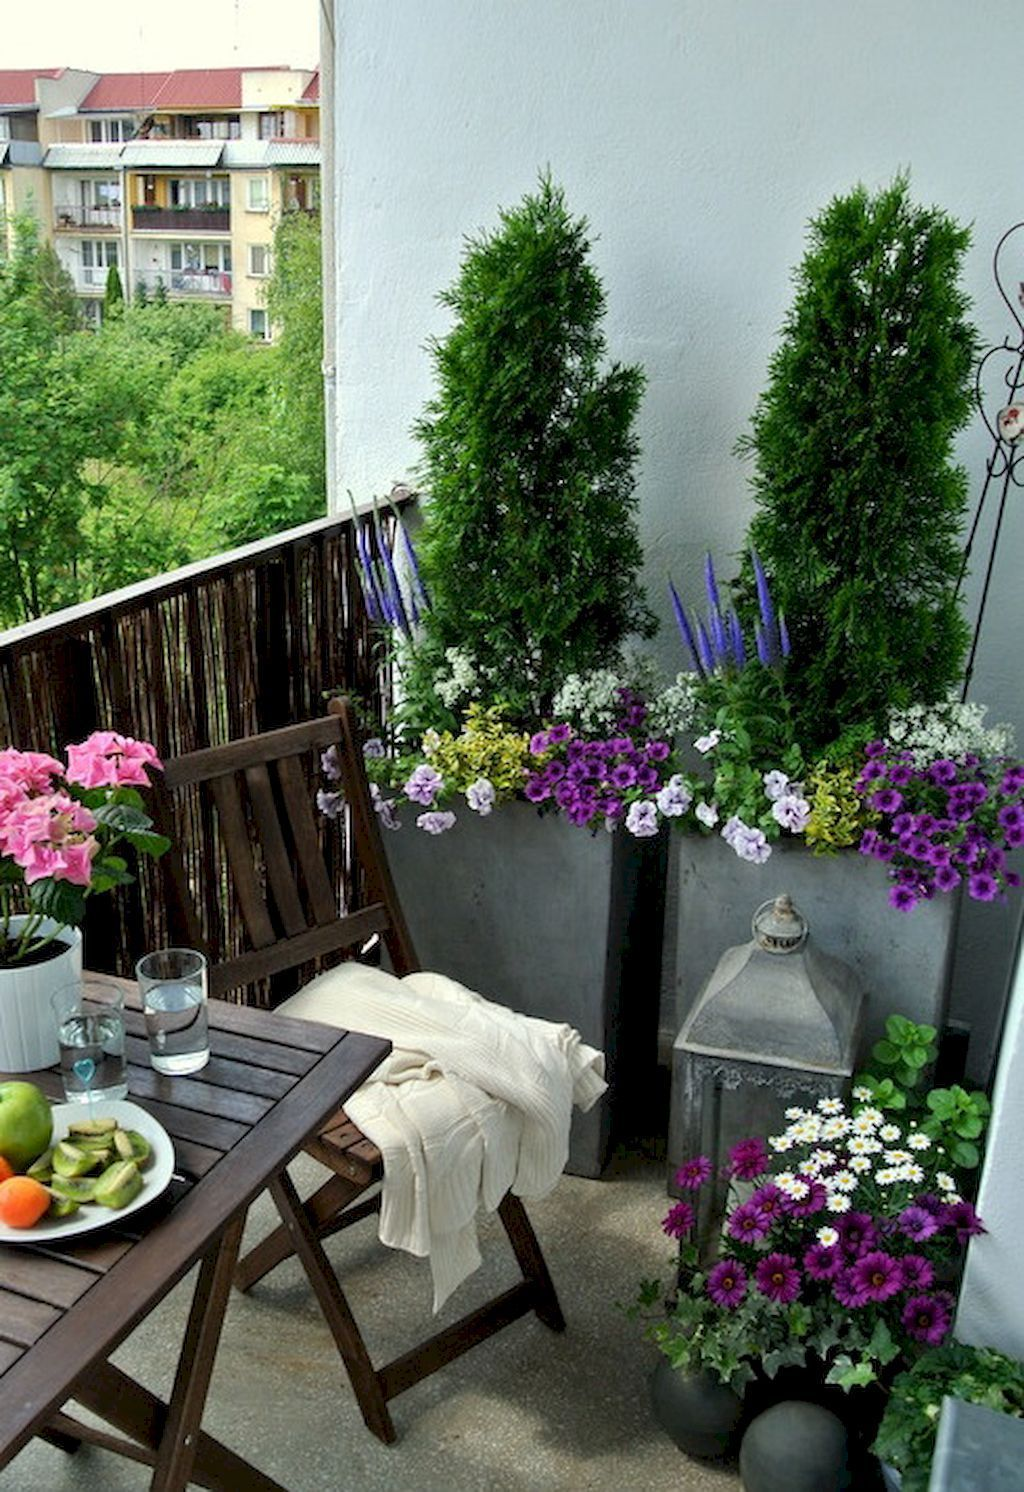 Adorable 80 Small Apartment Balcony Decorating Ideas on A Budget  https://decorapartment. - Pin On Apartment